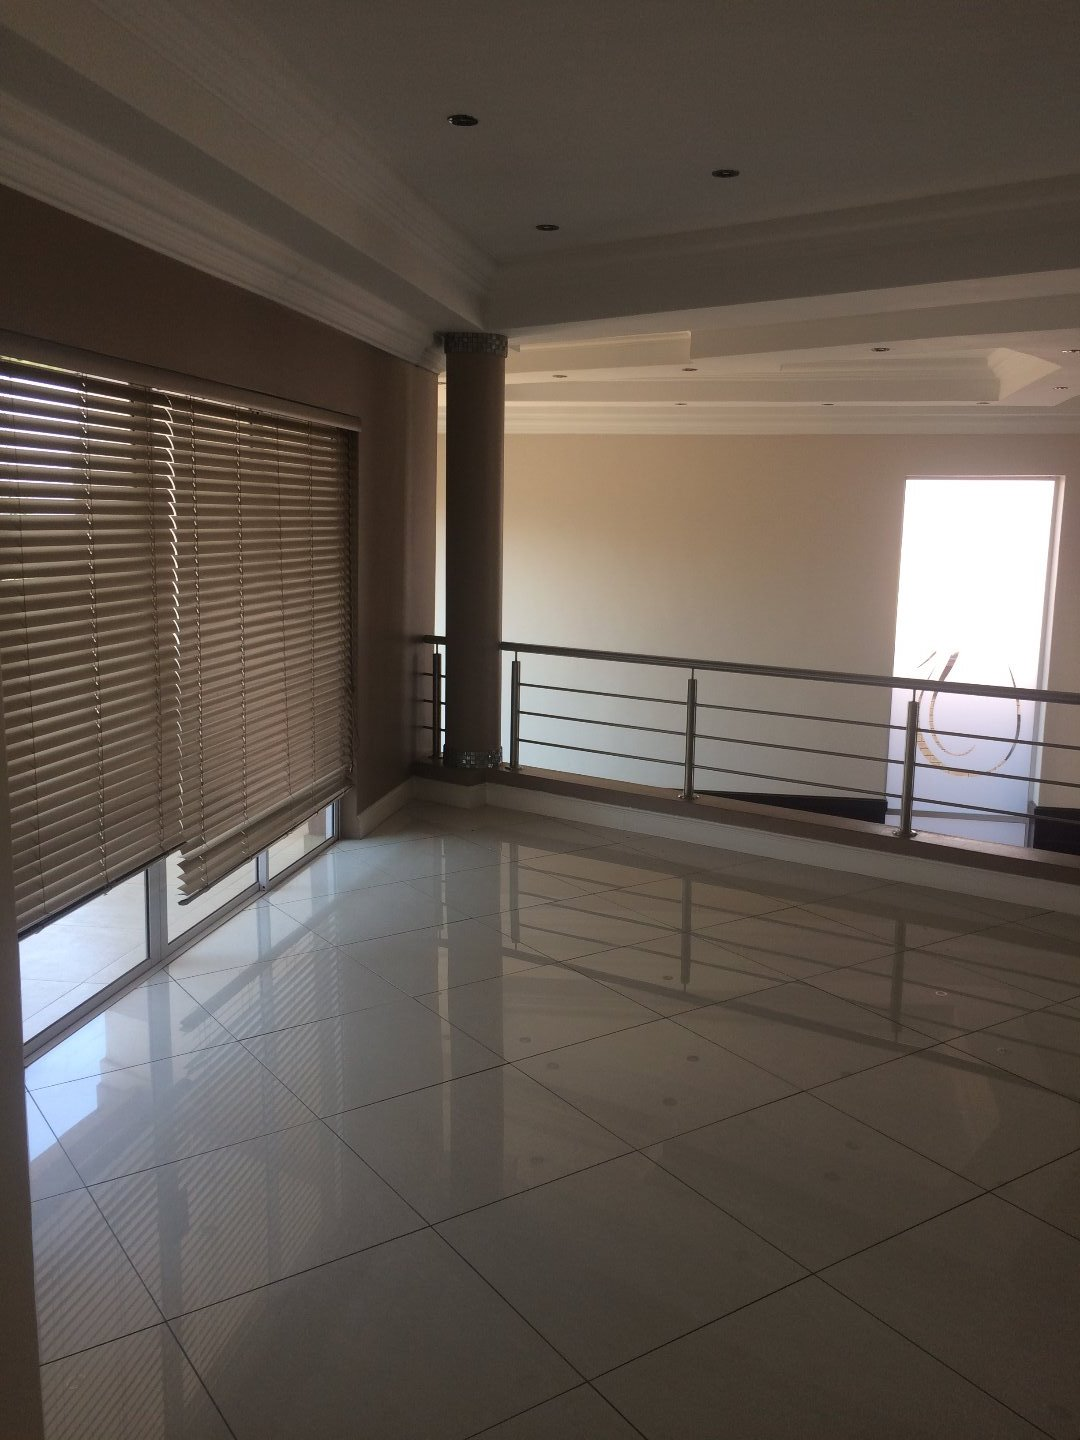 Meyersdal property to rent. Ref No: 13617379. Picture no 31